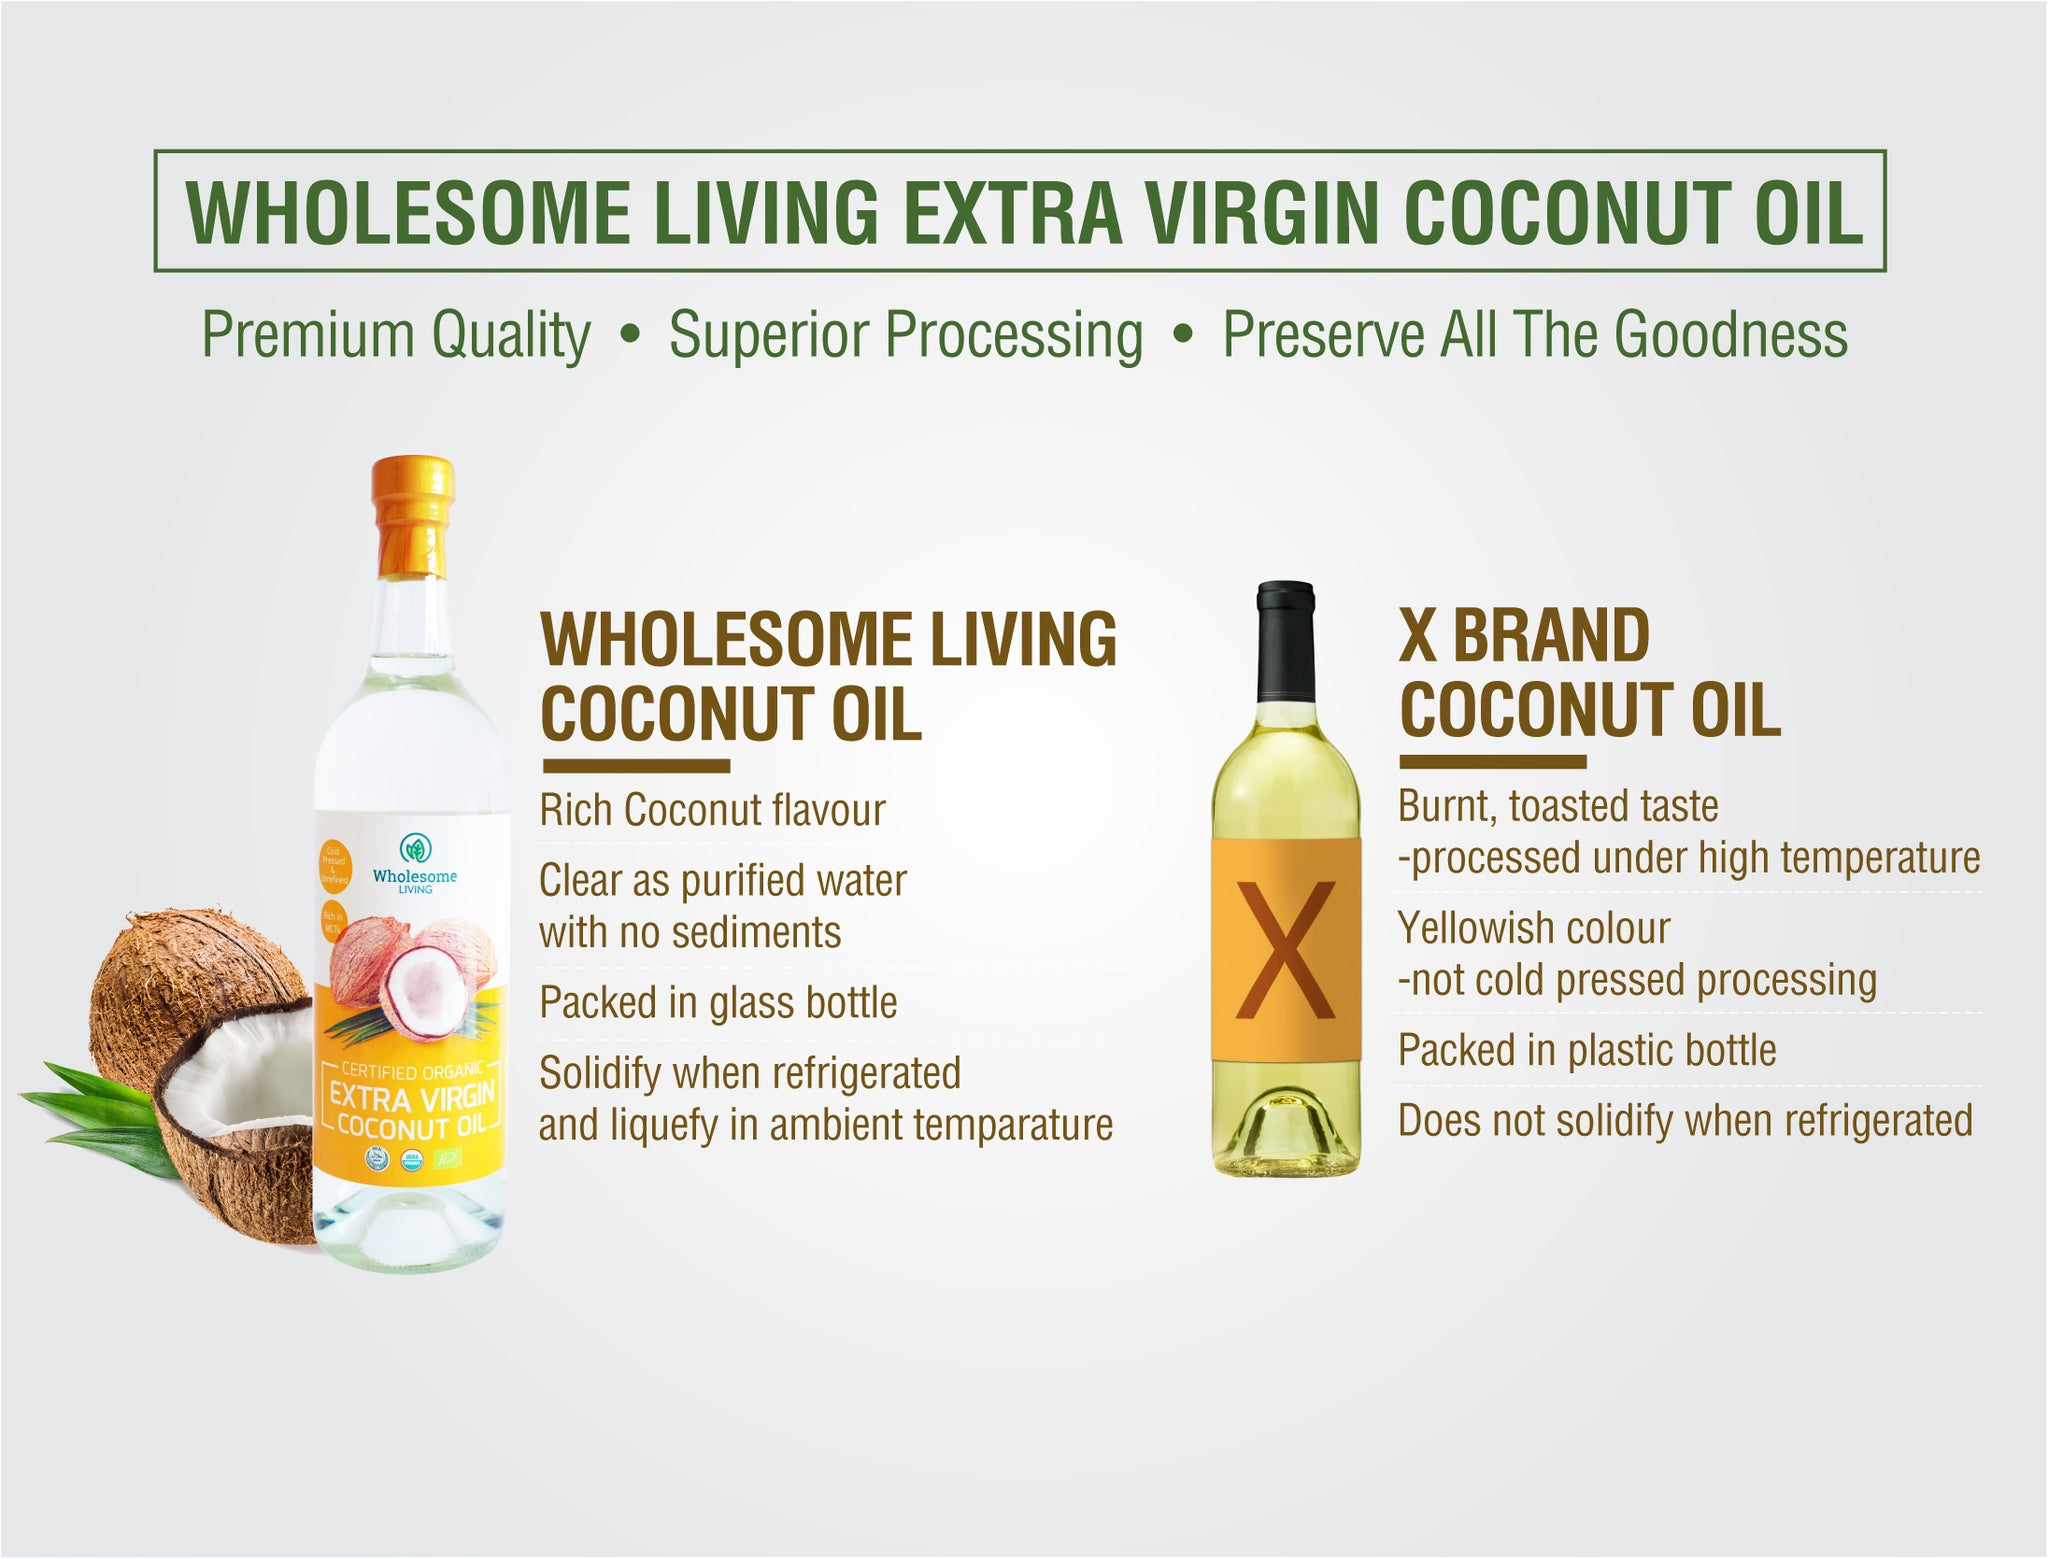 Wholesome Living Coconut Oil